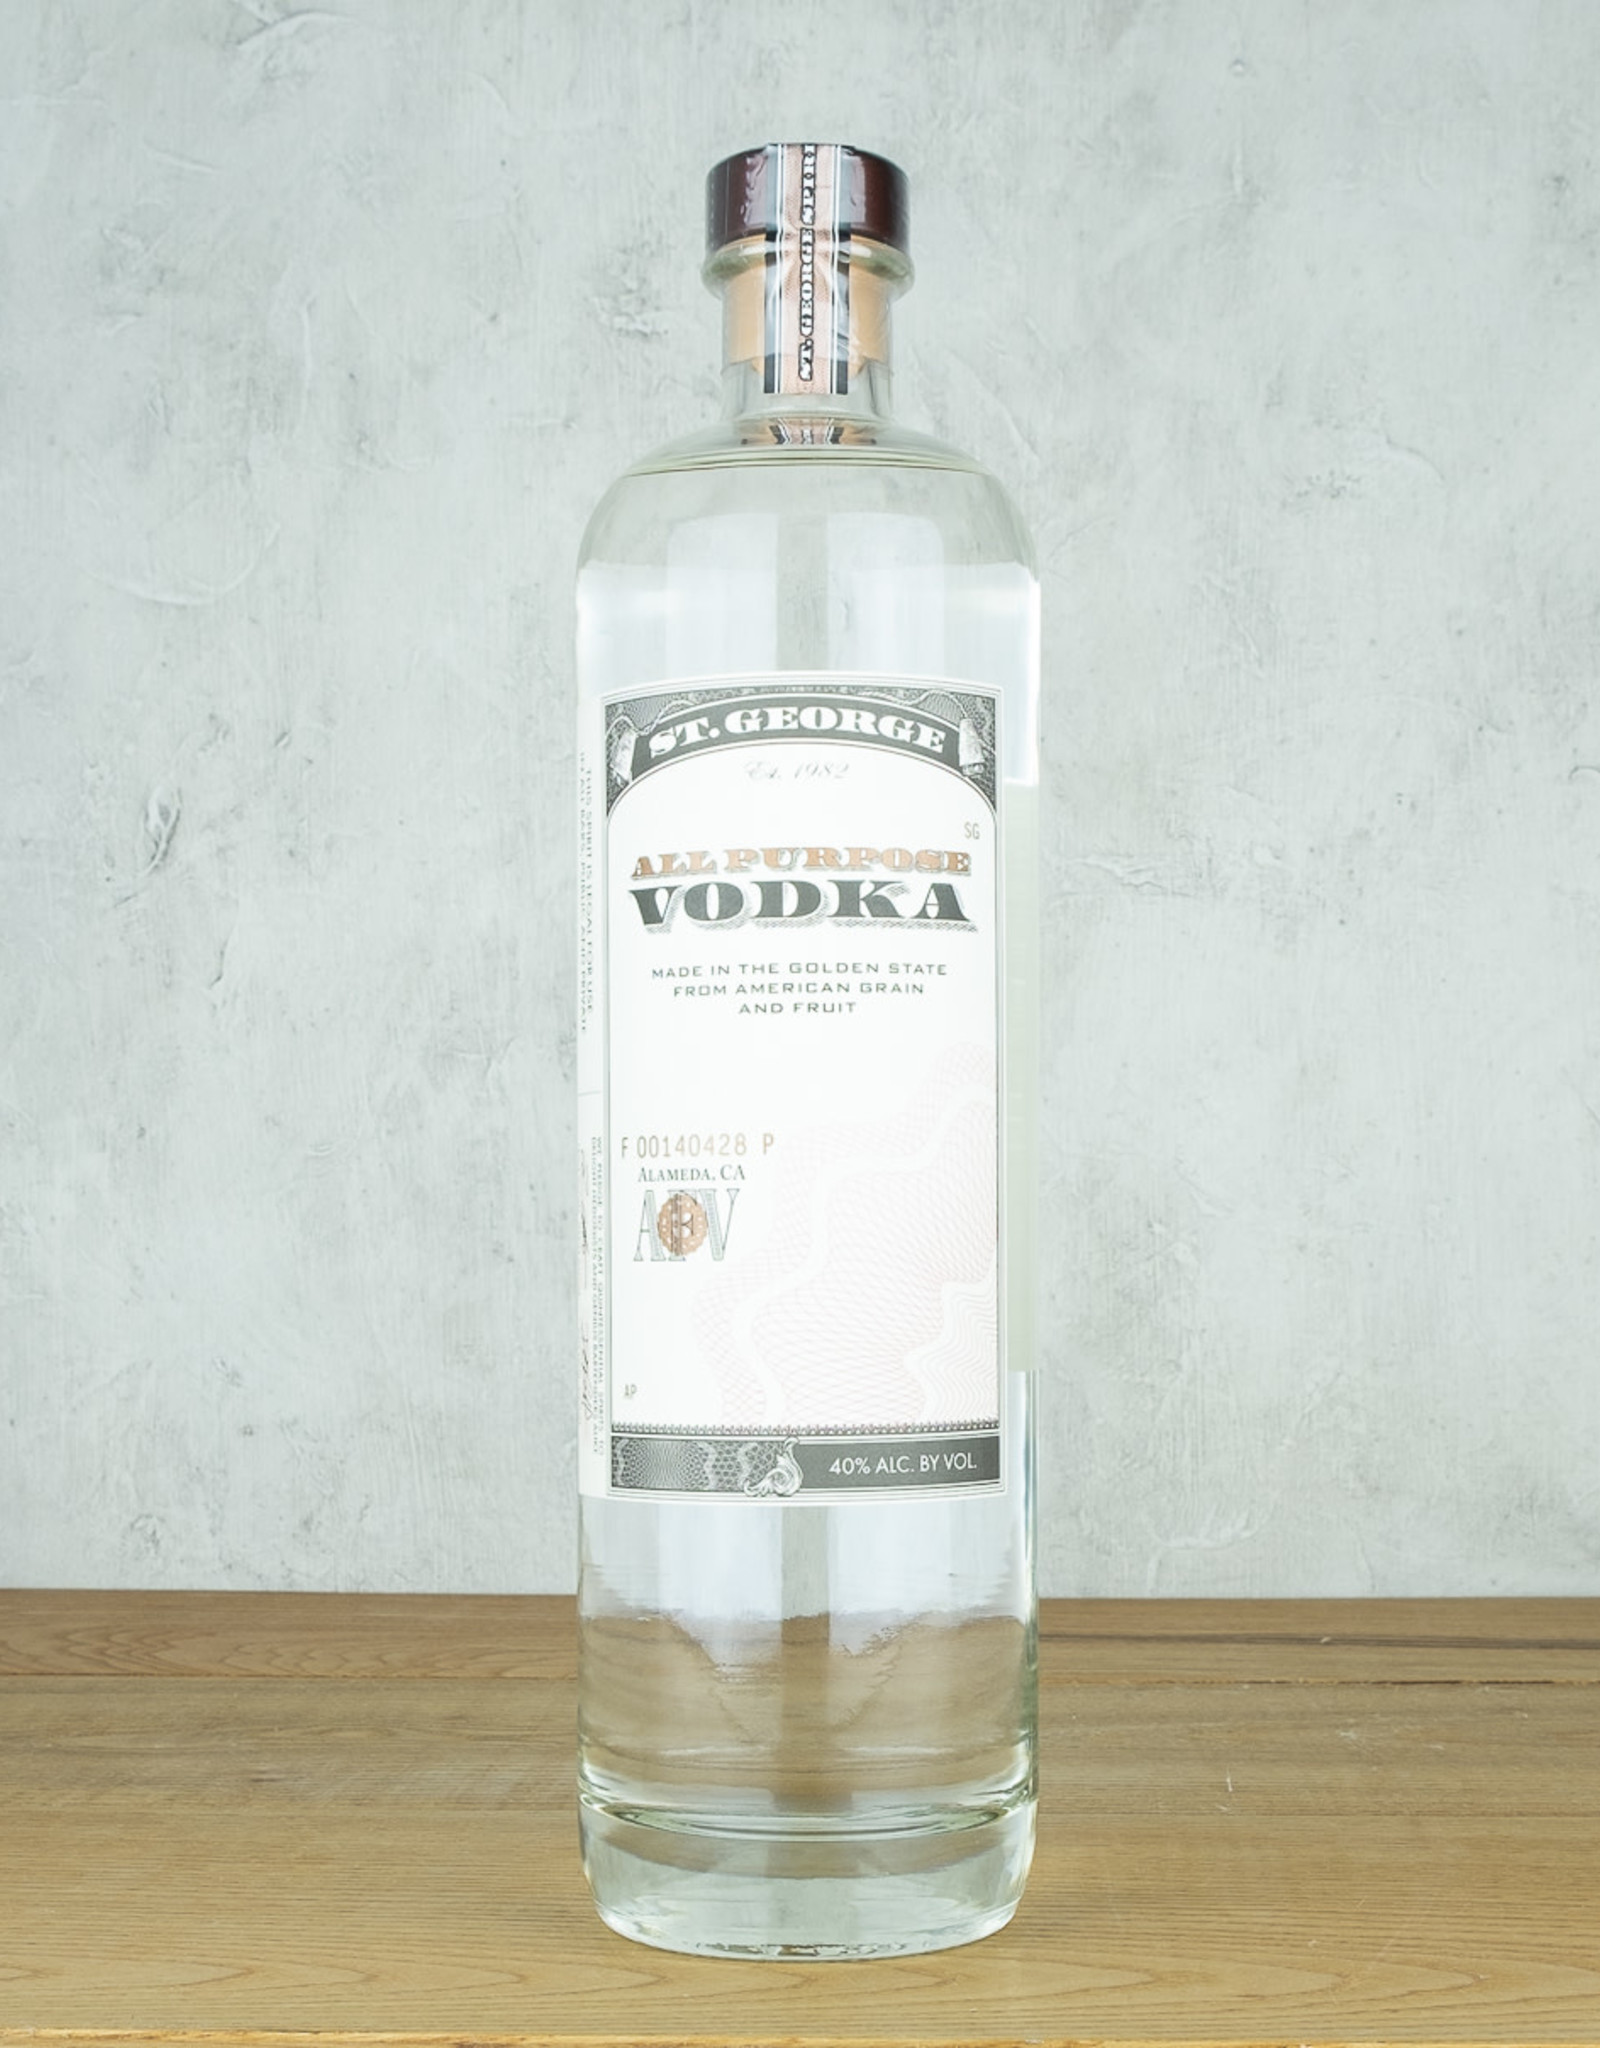 St George All Purpose Vodka